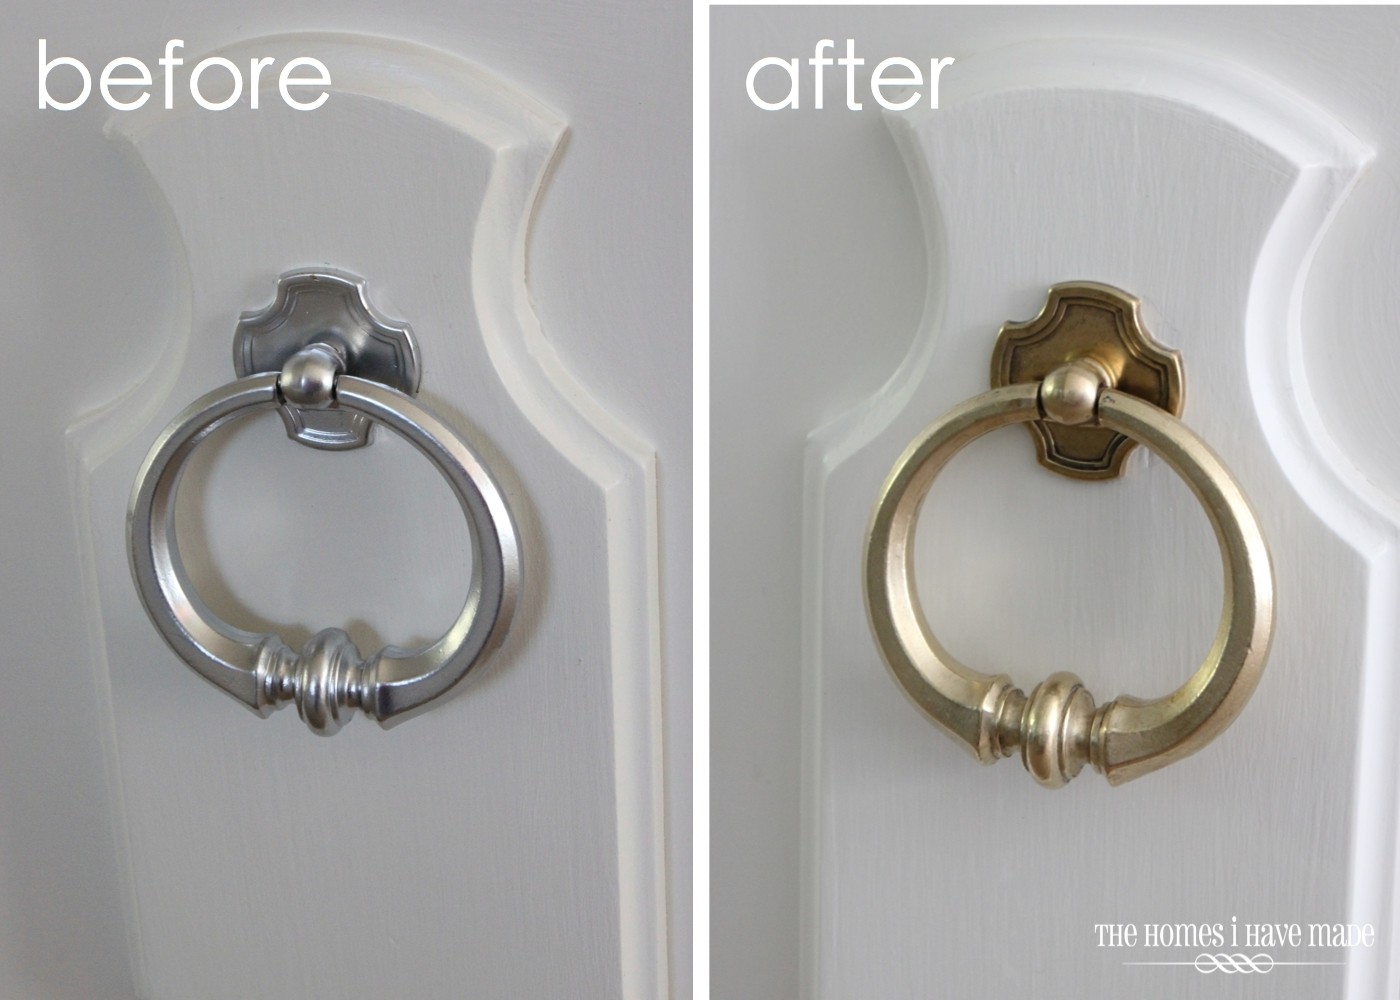 brass hardware - removing paint and polishing it until it shines